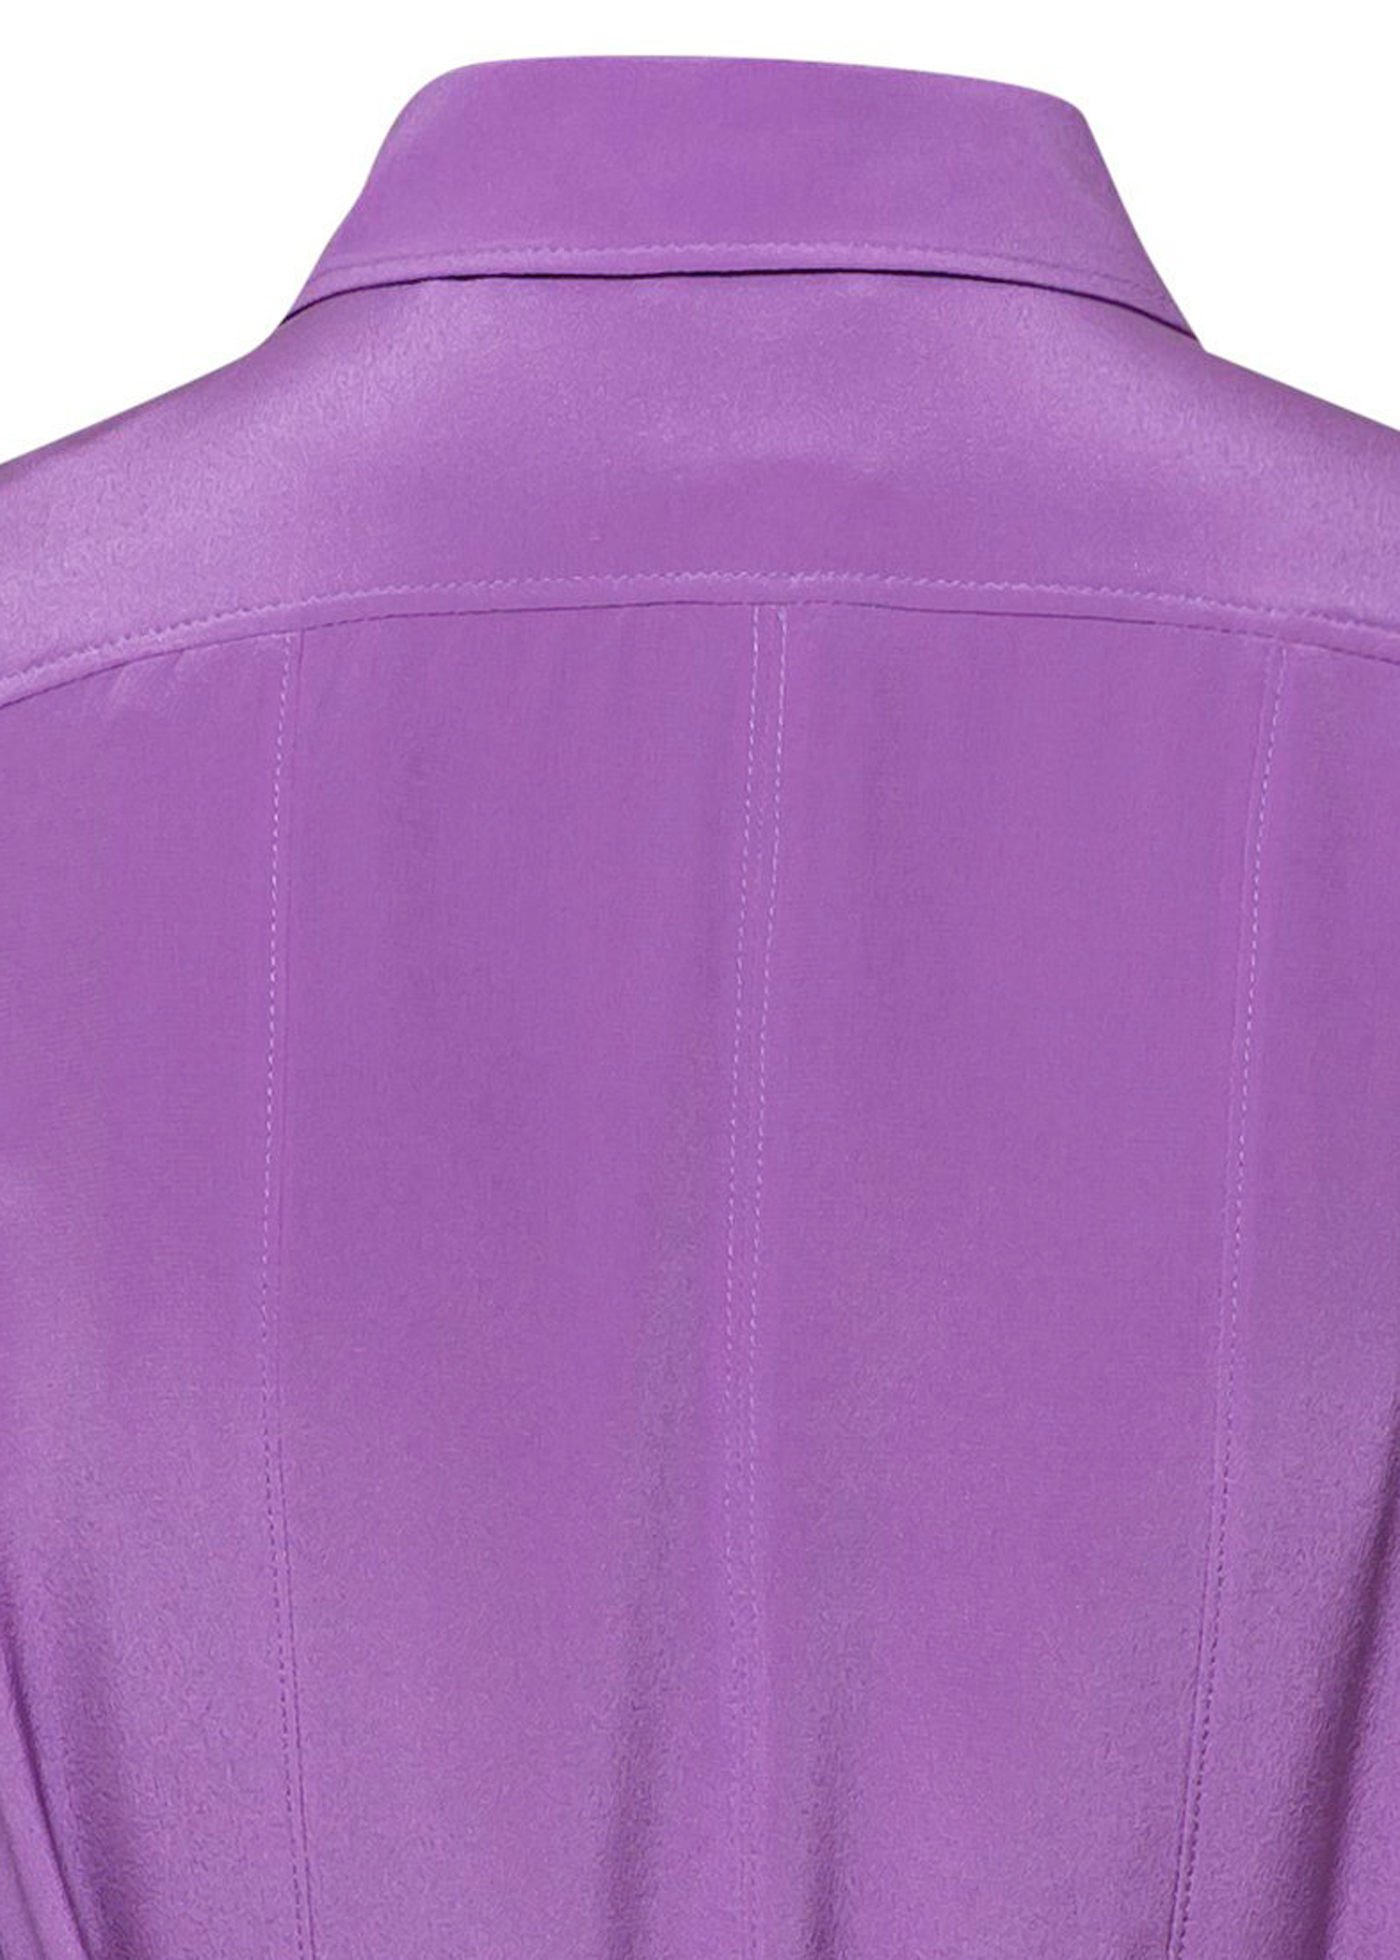 PLEATED SILK SHIRT DRESS image number 3